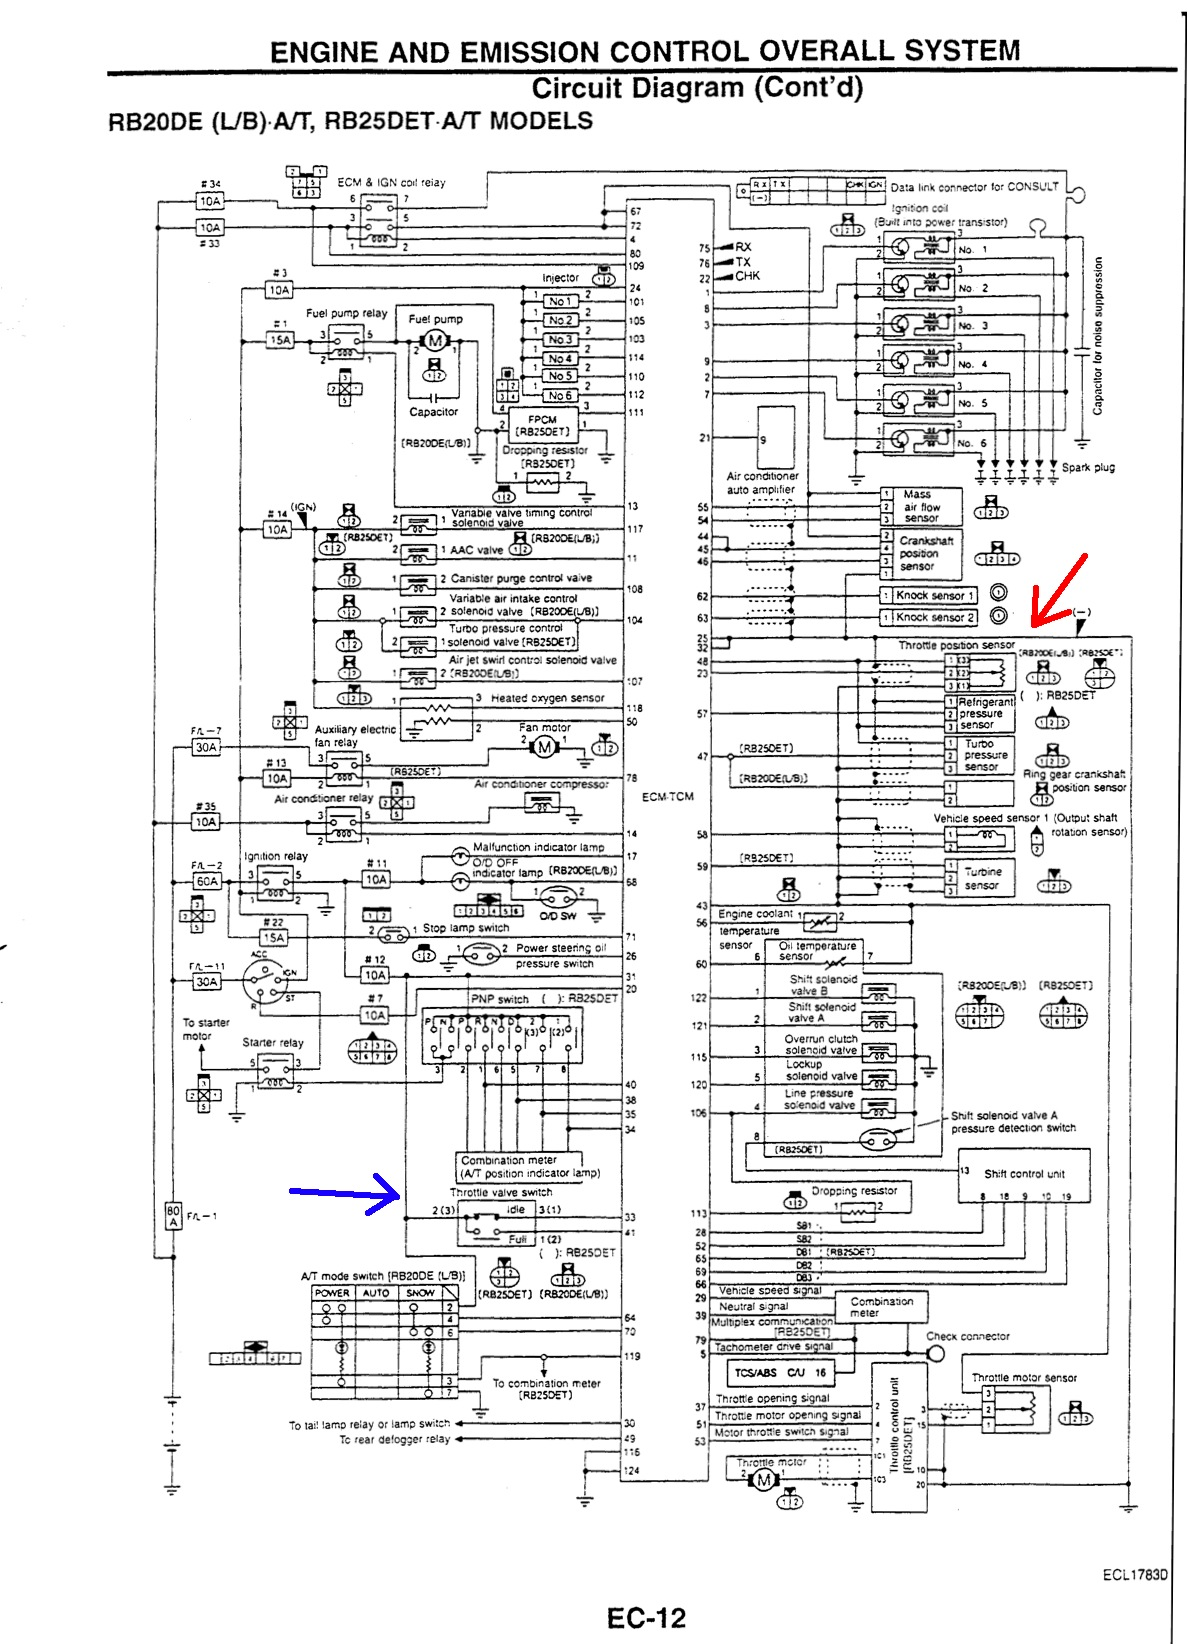 rb25 neo colour wiring diagram simple er for hotel management system tps pinouts general maintenance sau community